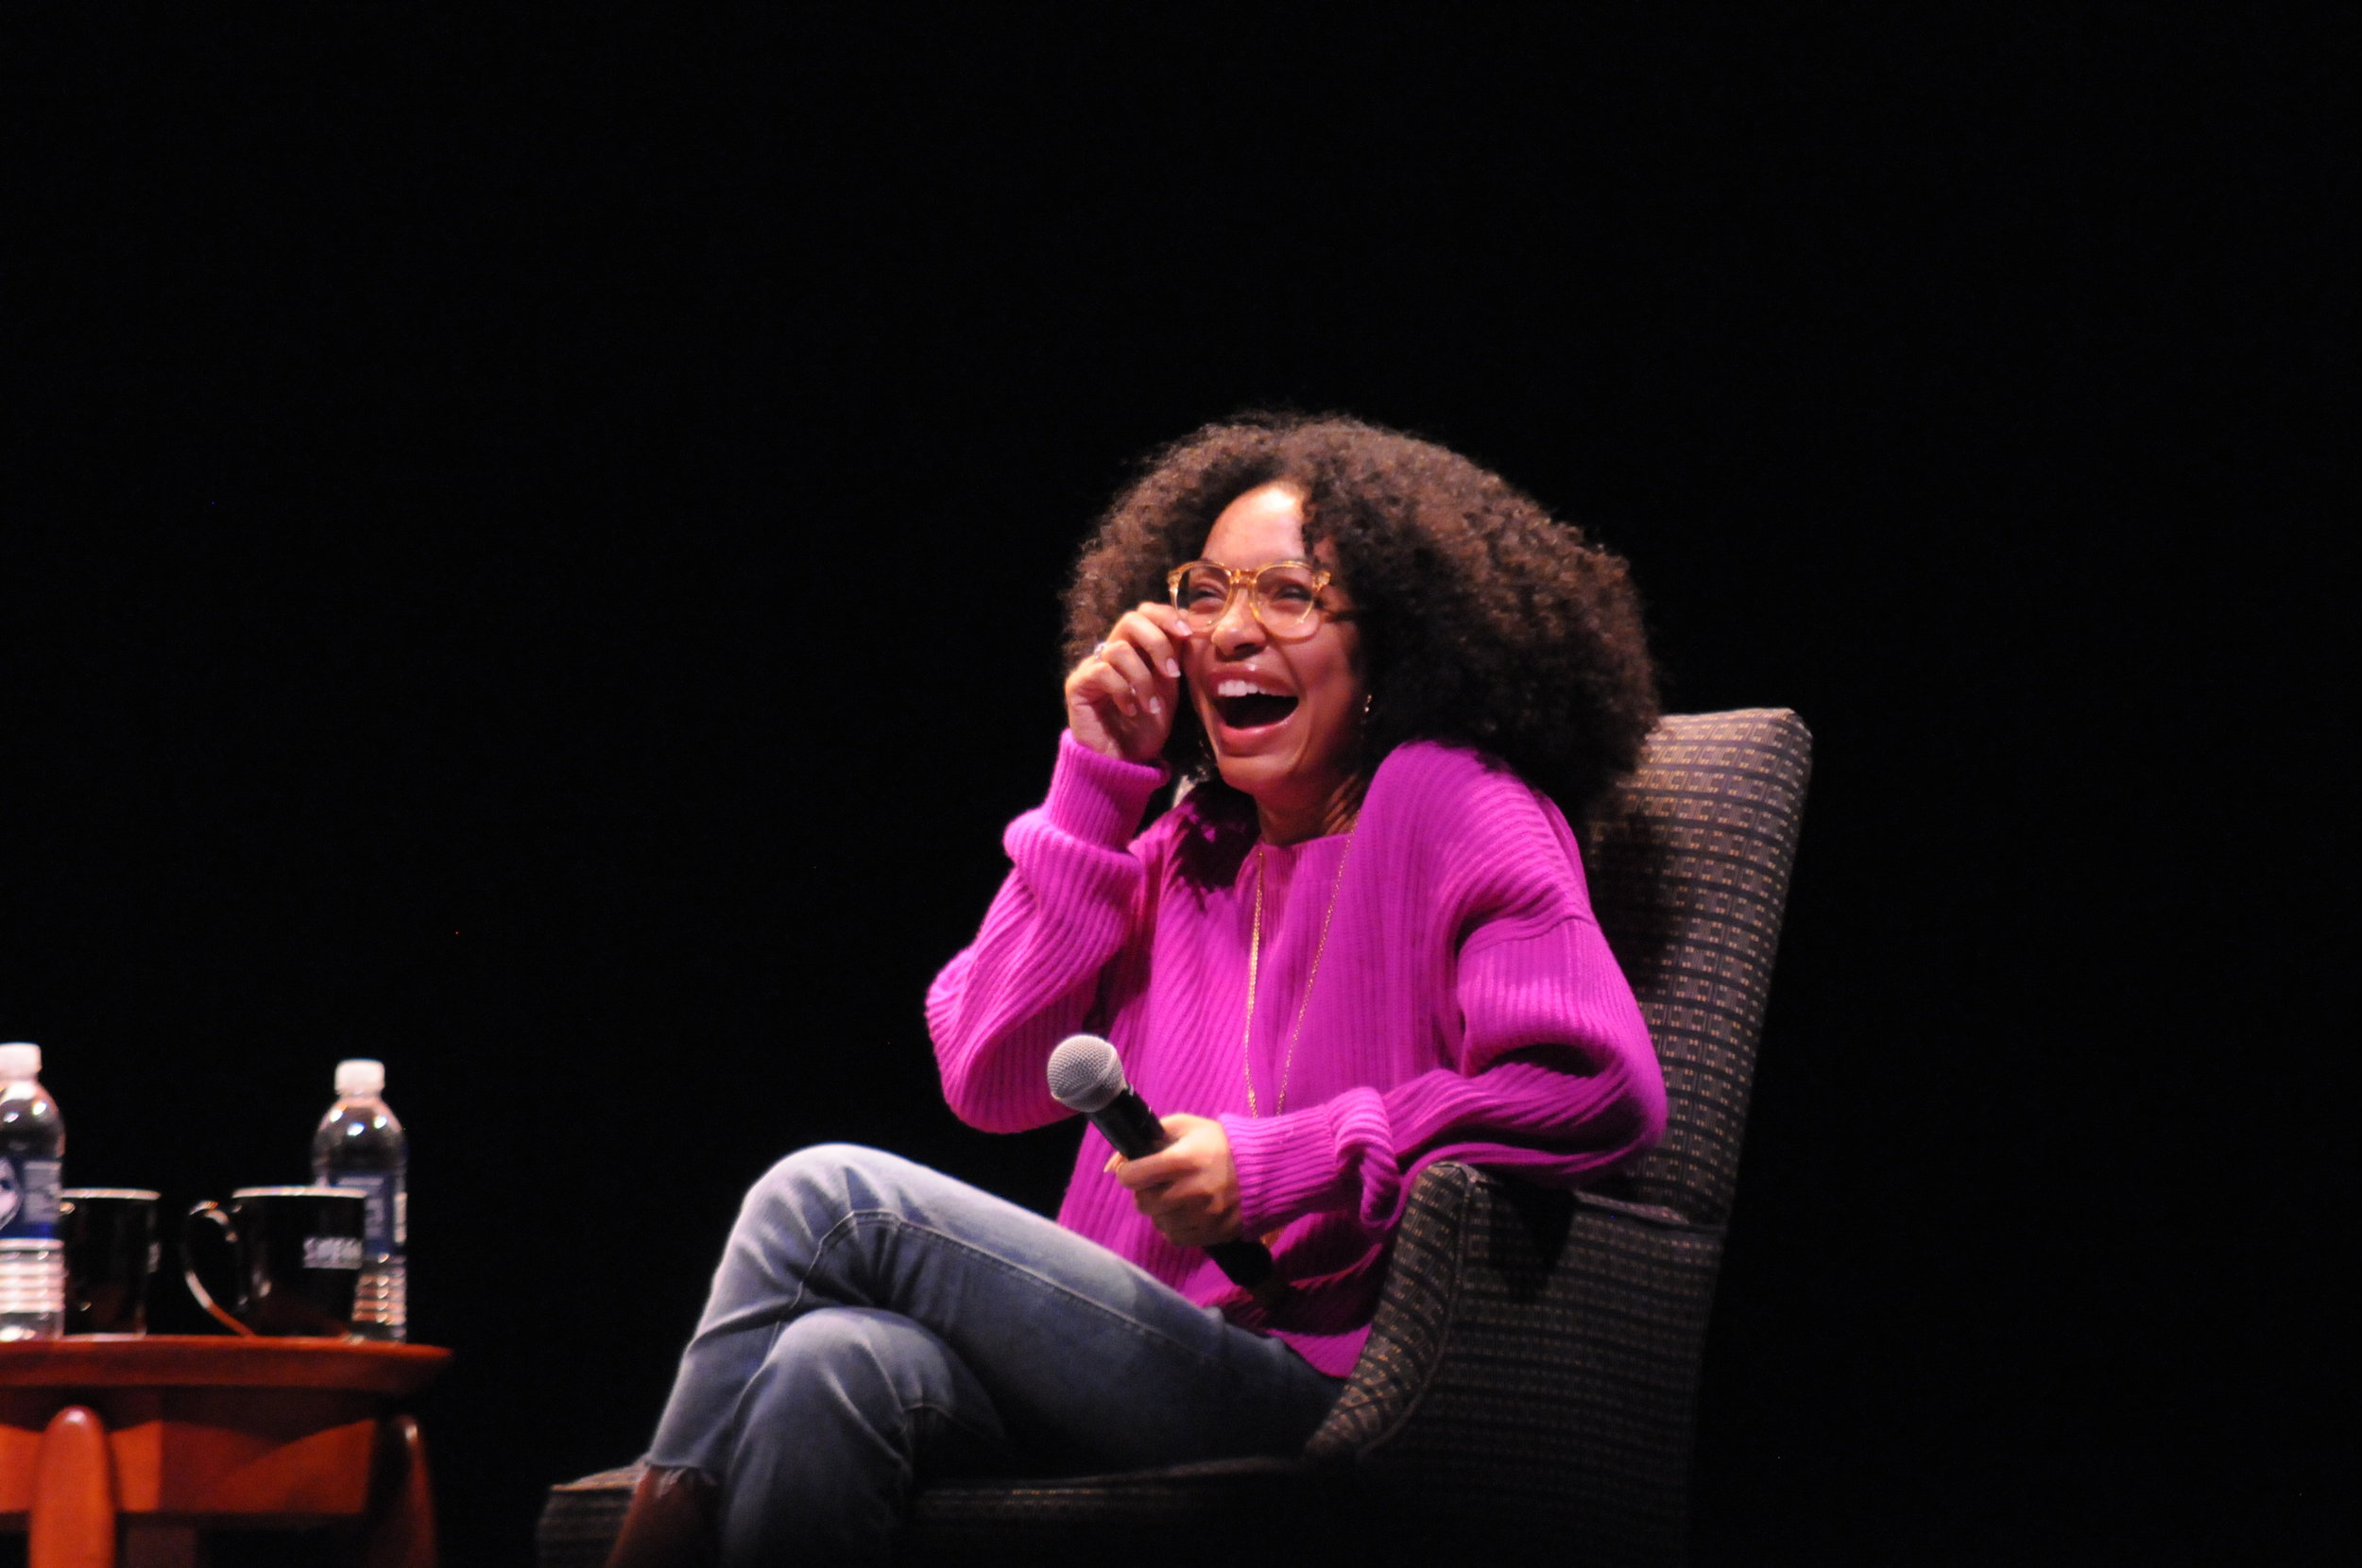 Actress, model and activist Yara Shahidi took the Jorgensen stage Saturday night to share her message of equality and inspiration to University of Connecticut students in a moderated conversation hosted by SUBOG. (Hanaisha Lewis/The Daily Campus)